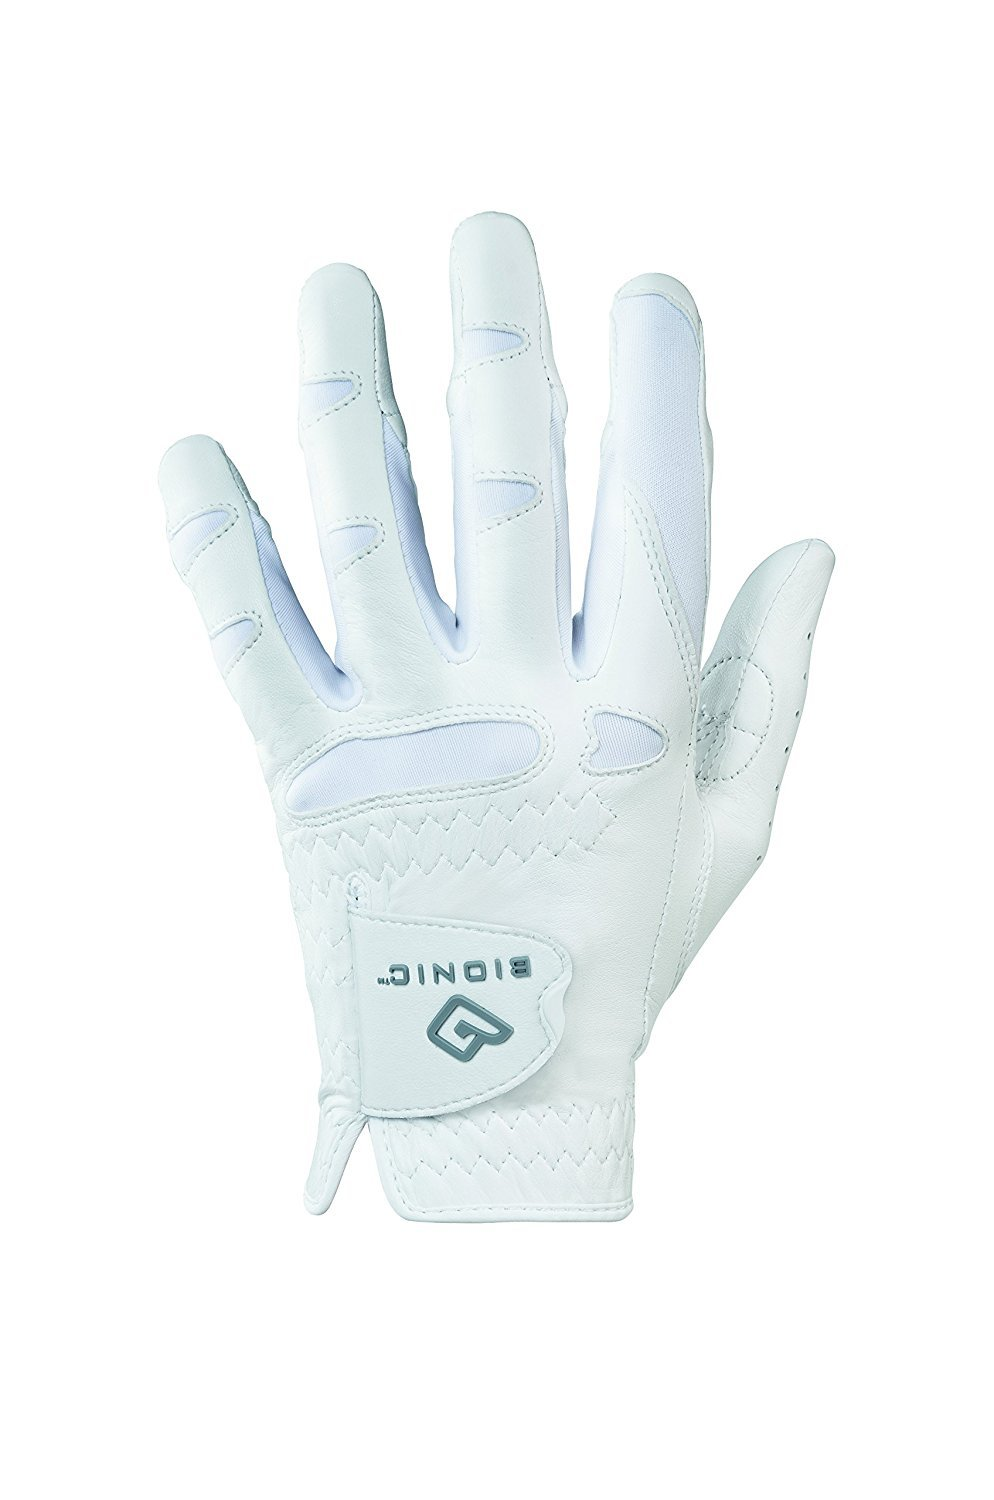 Bionic Gloves GGNWLXL StableGrip With Natural Fit Womens Left Golf Glove, White - XL   B00VF87770